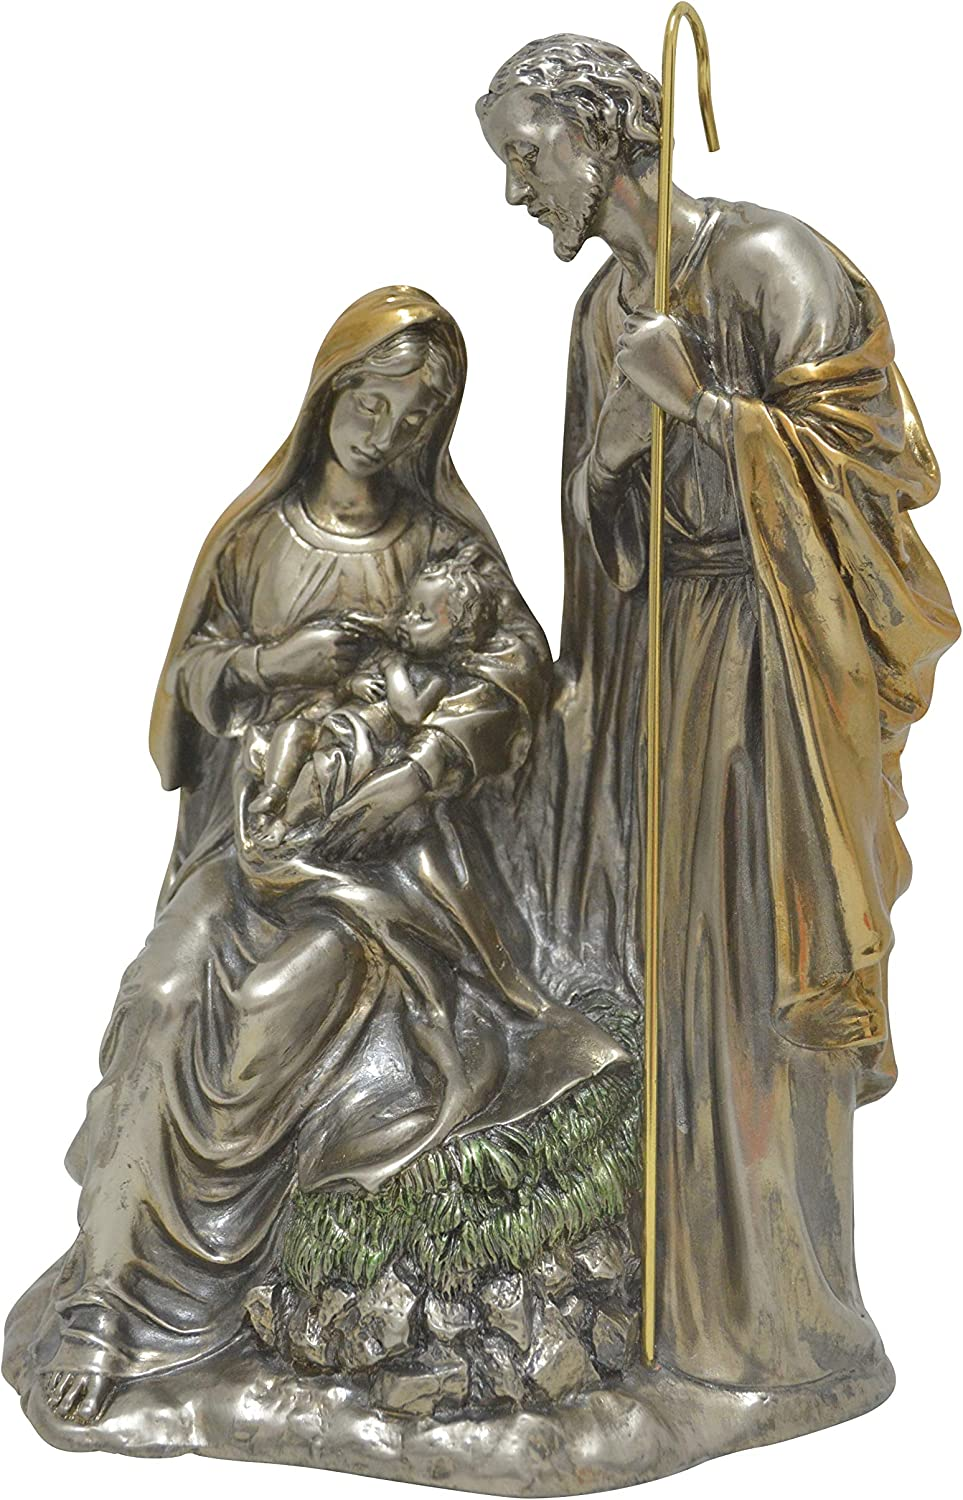 Traditional Holy Family Nativity Scene Statue - Nacimiento Metalico de la Sagrada Familia - Religious Art Home Christmas Metallic Decoration - Nickel/Brass (10.5 inches)